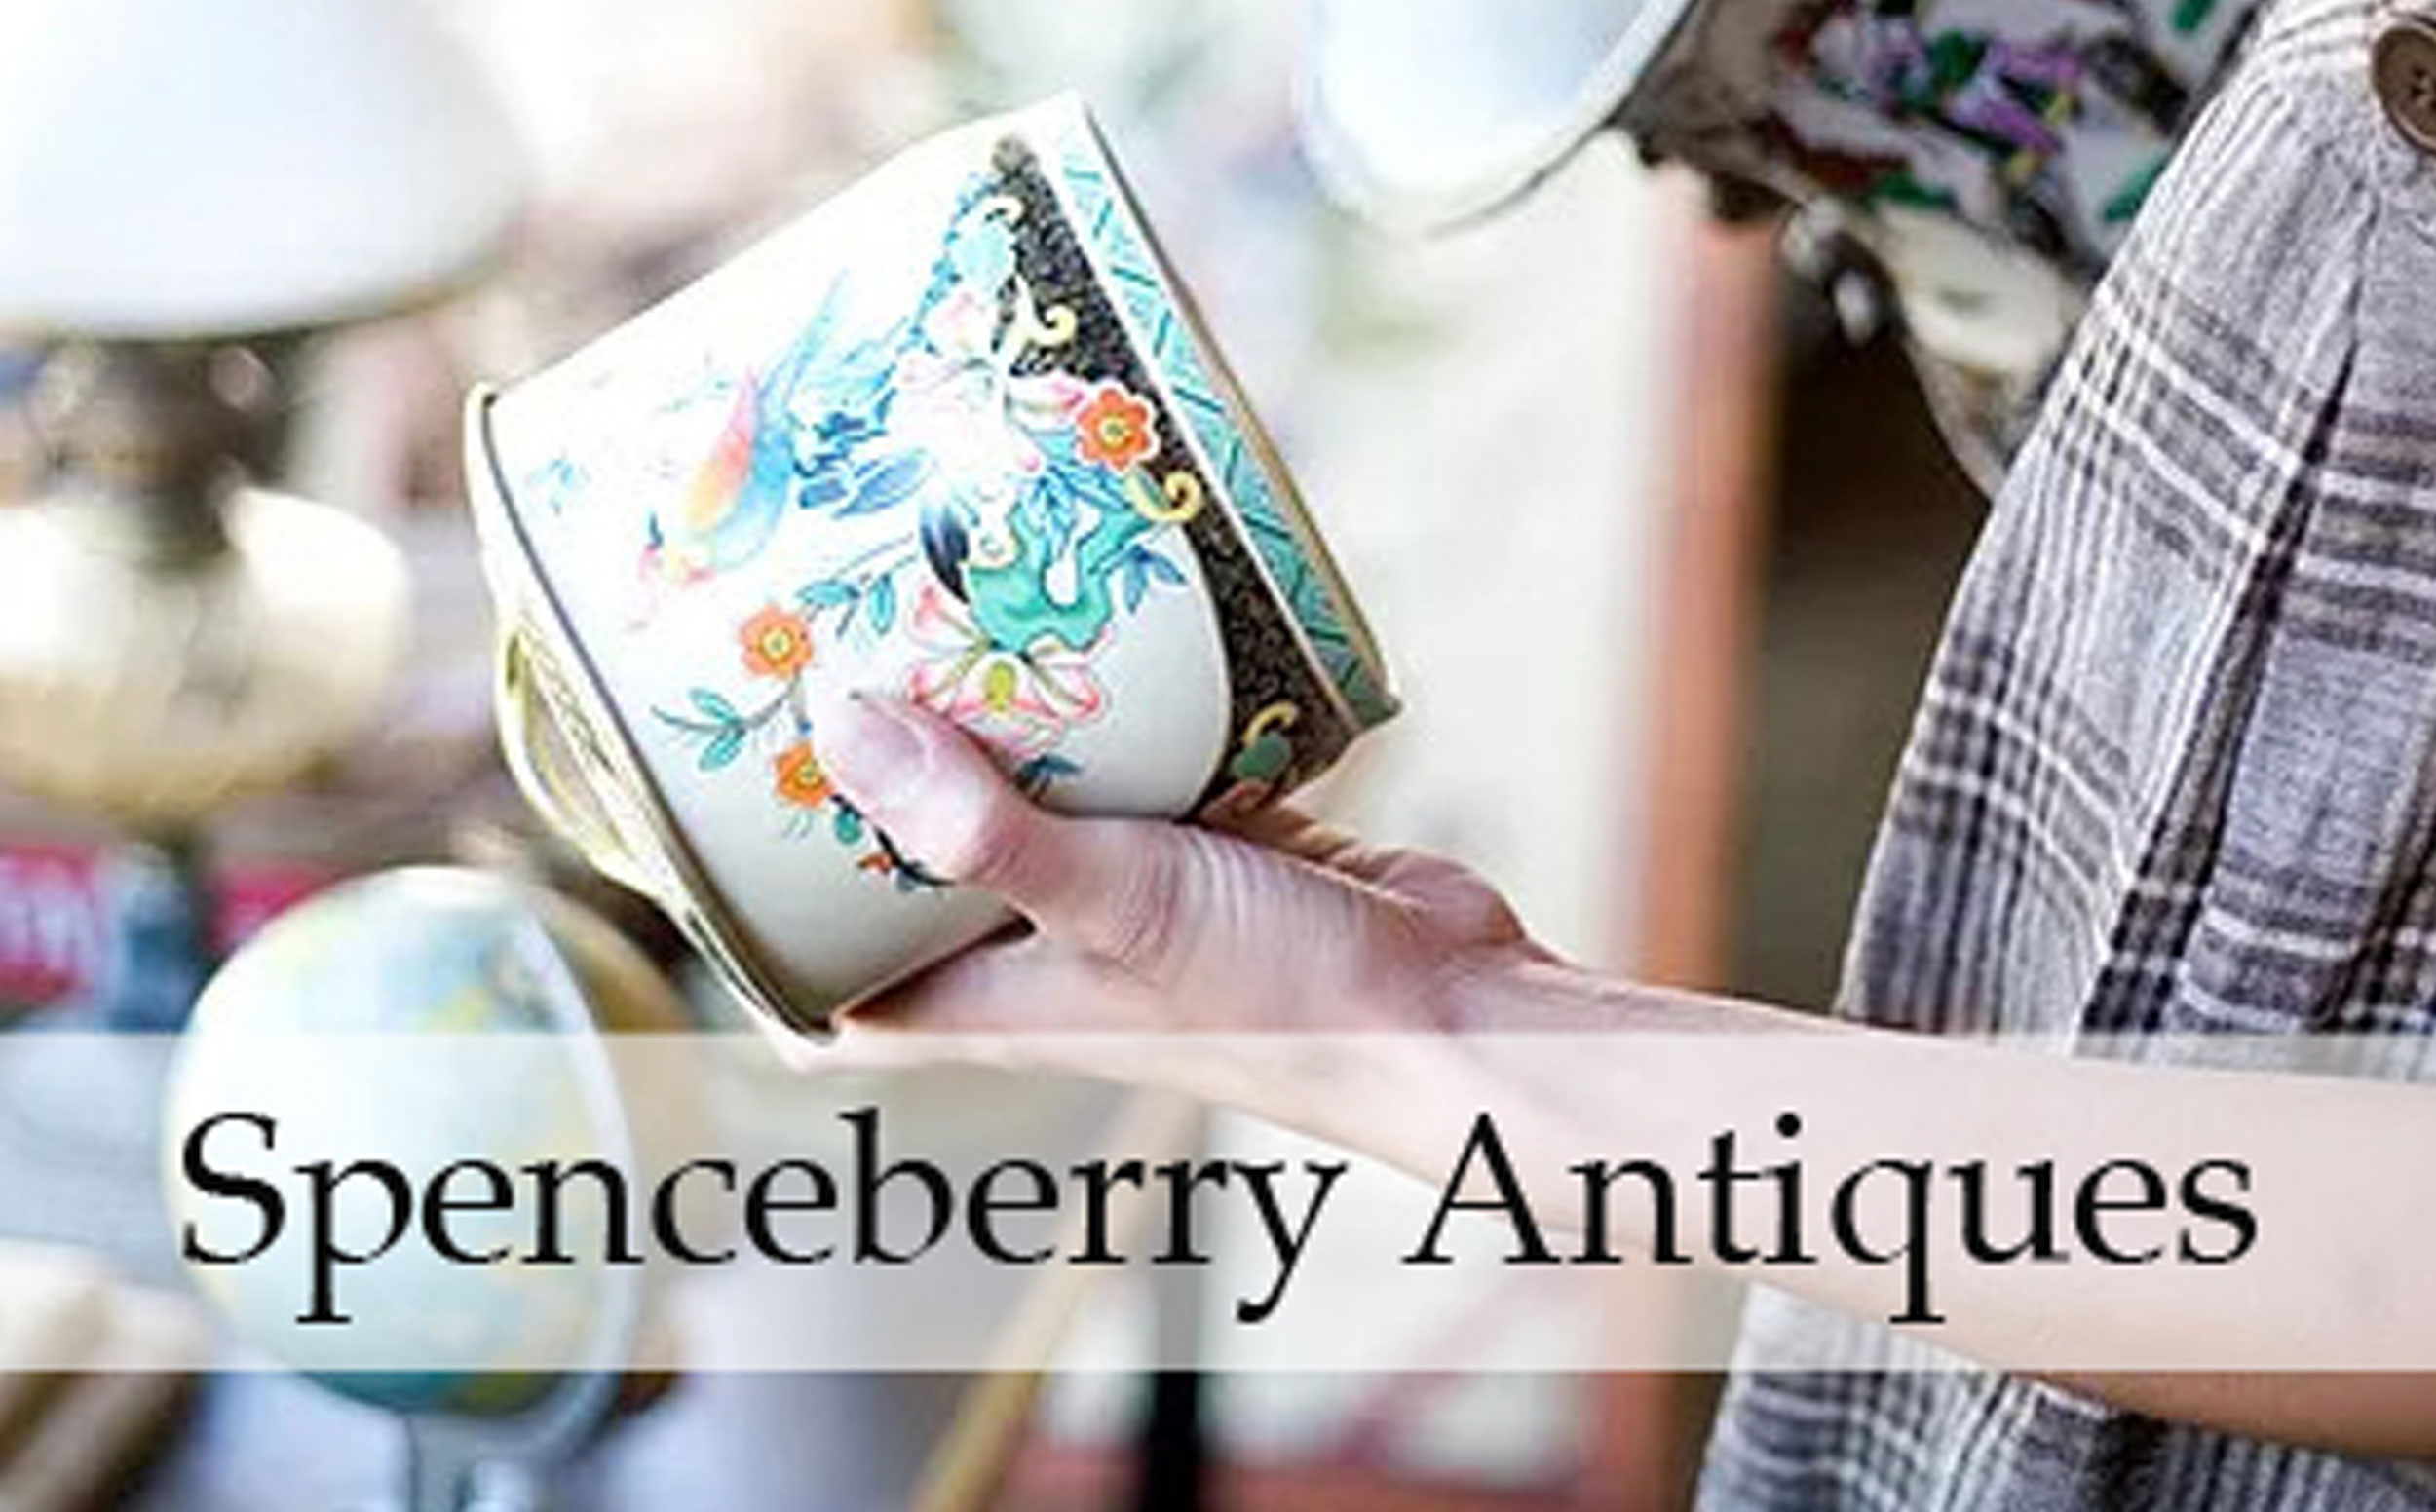 Spenceberry Antiques